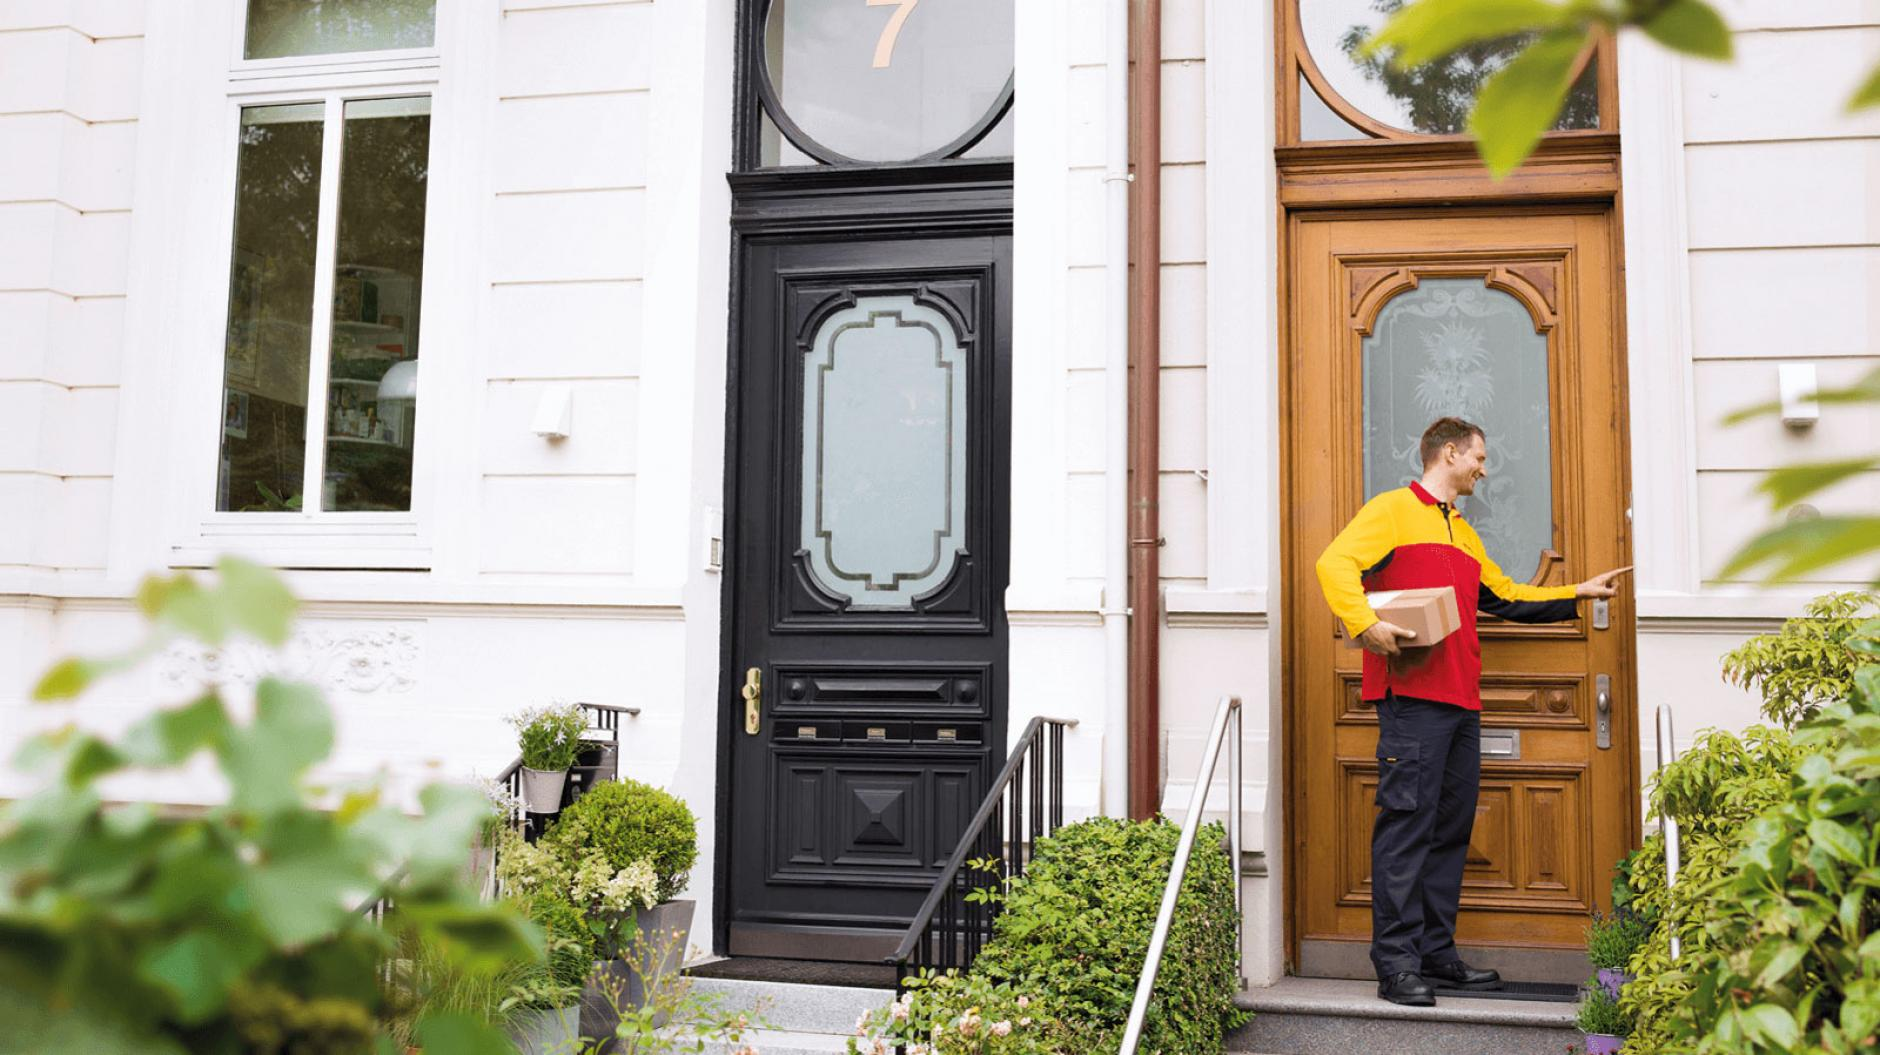 Not home? we'll be back! | DHL Parcel